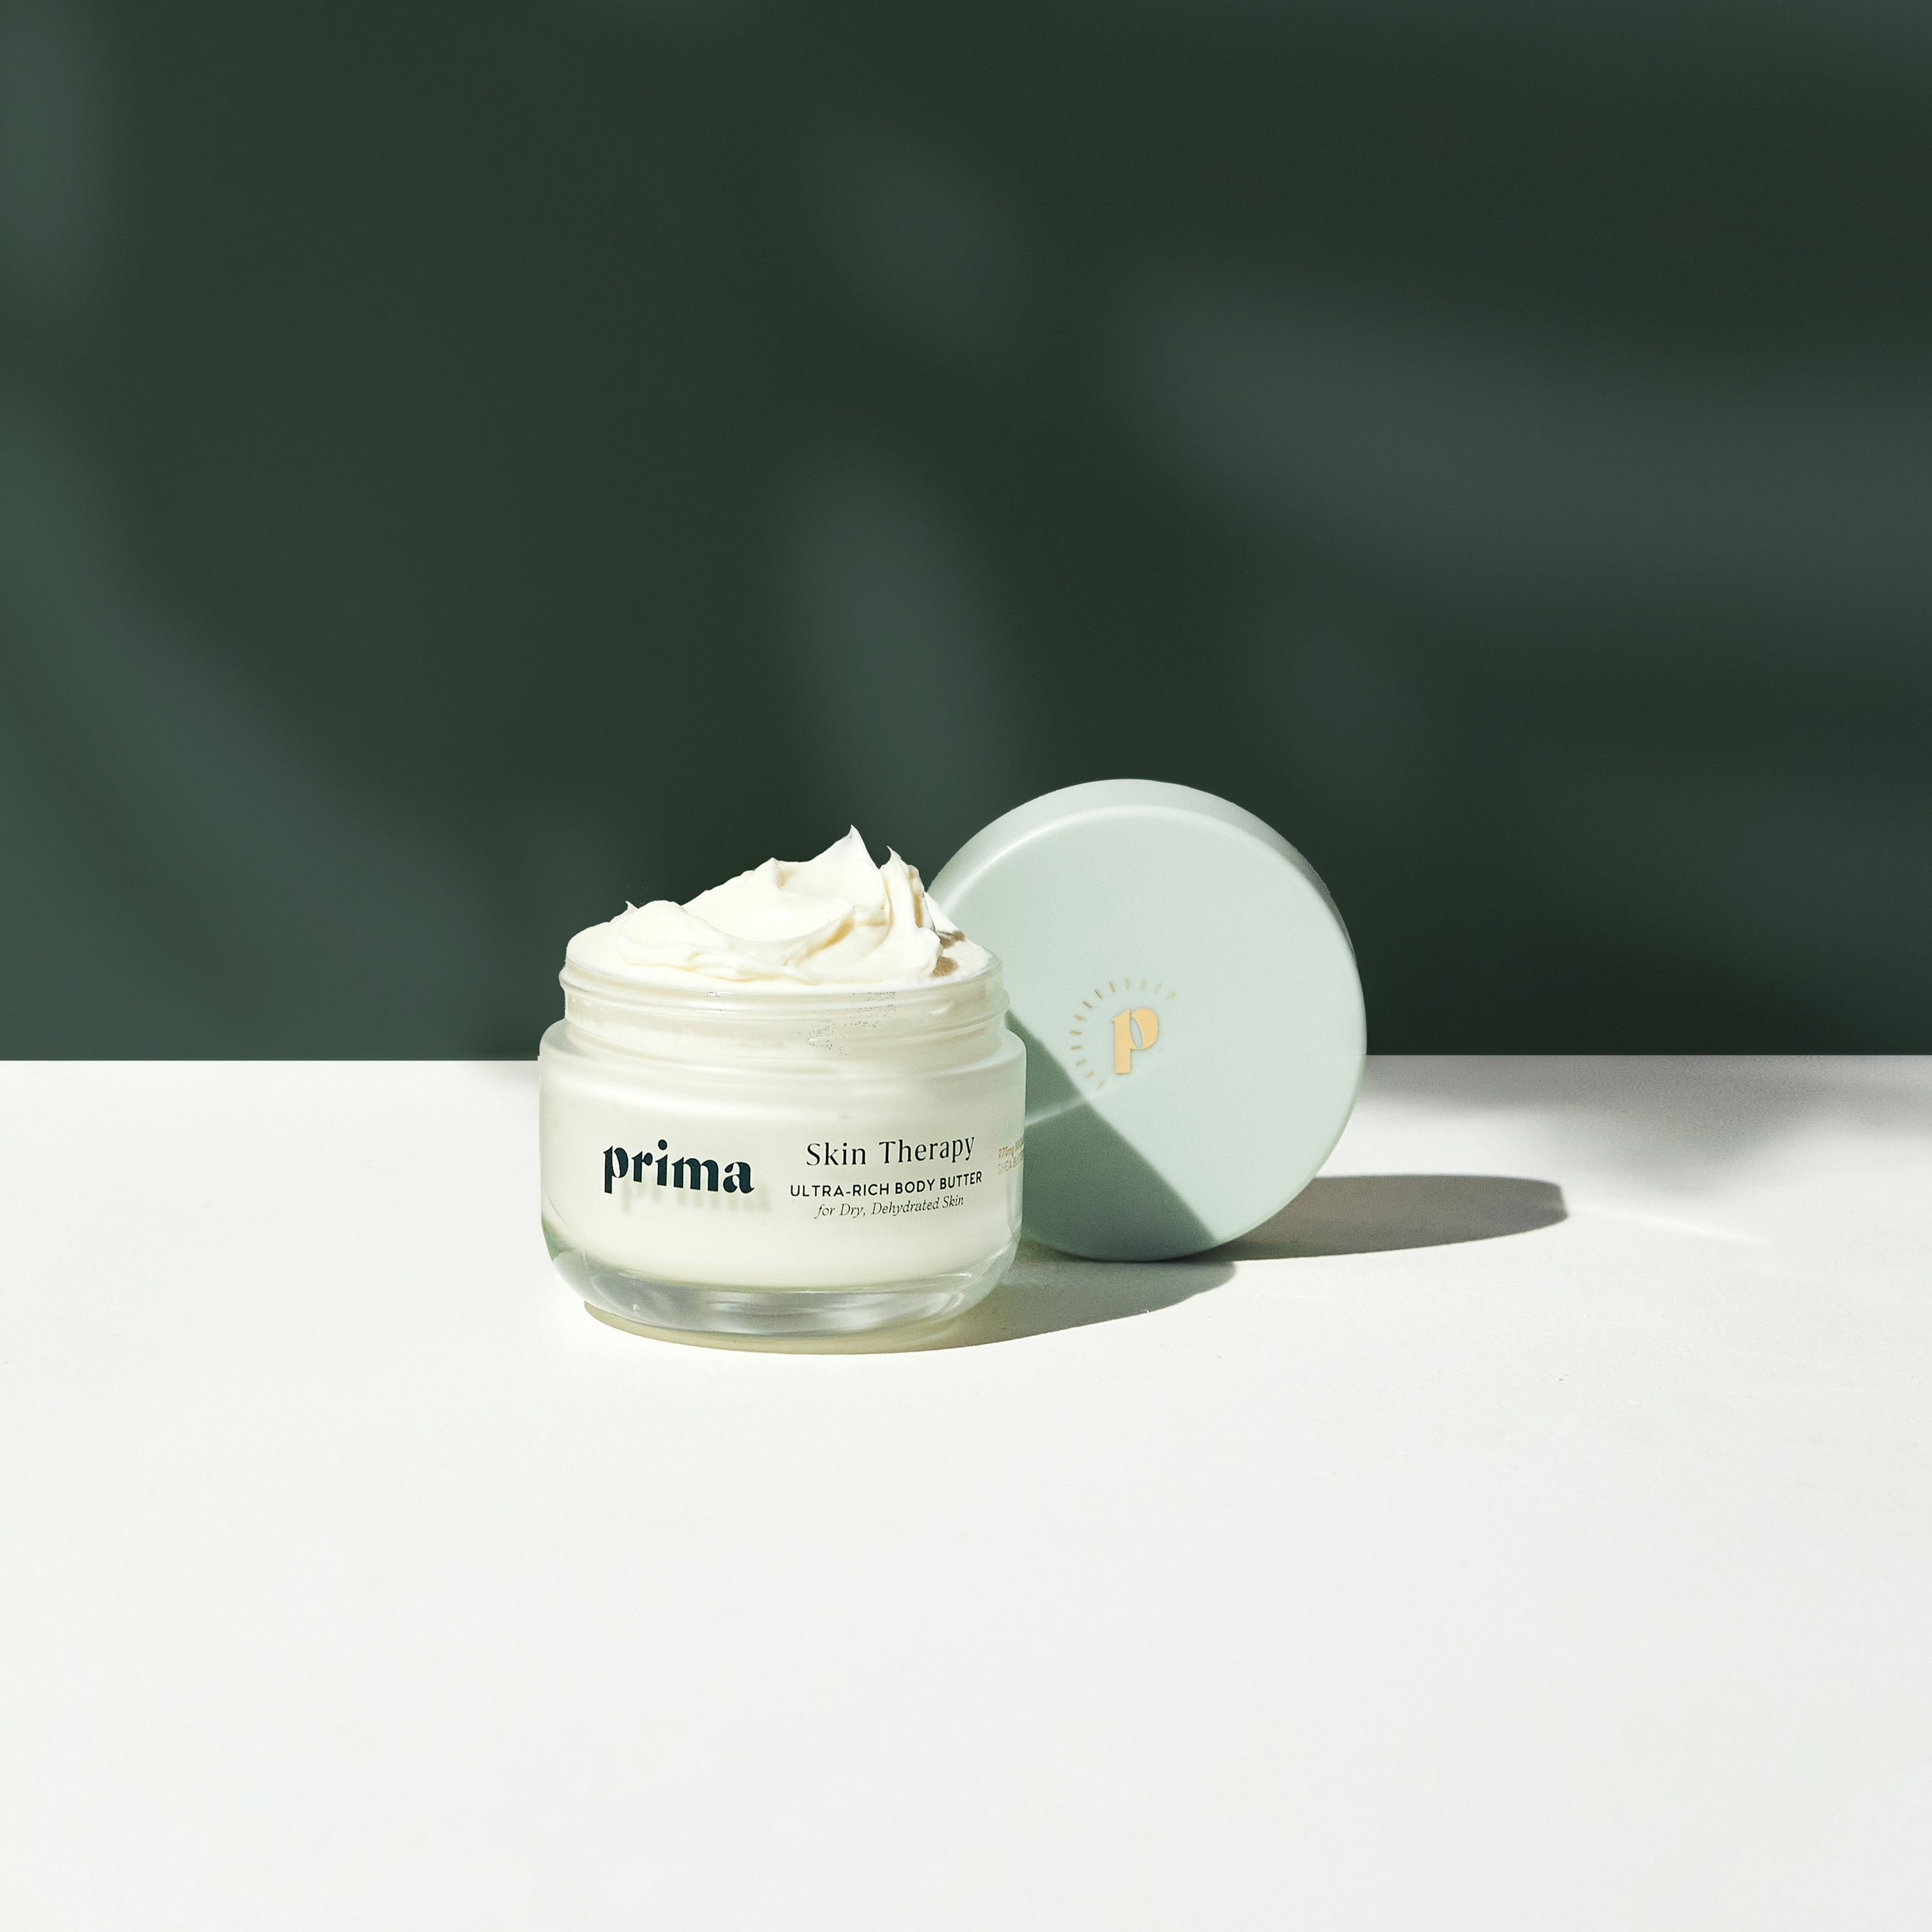 Prima's CBD Skin Cream for Dry Skin